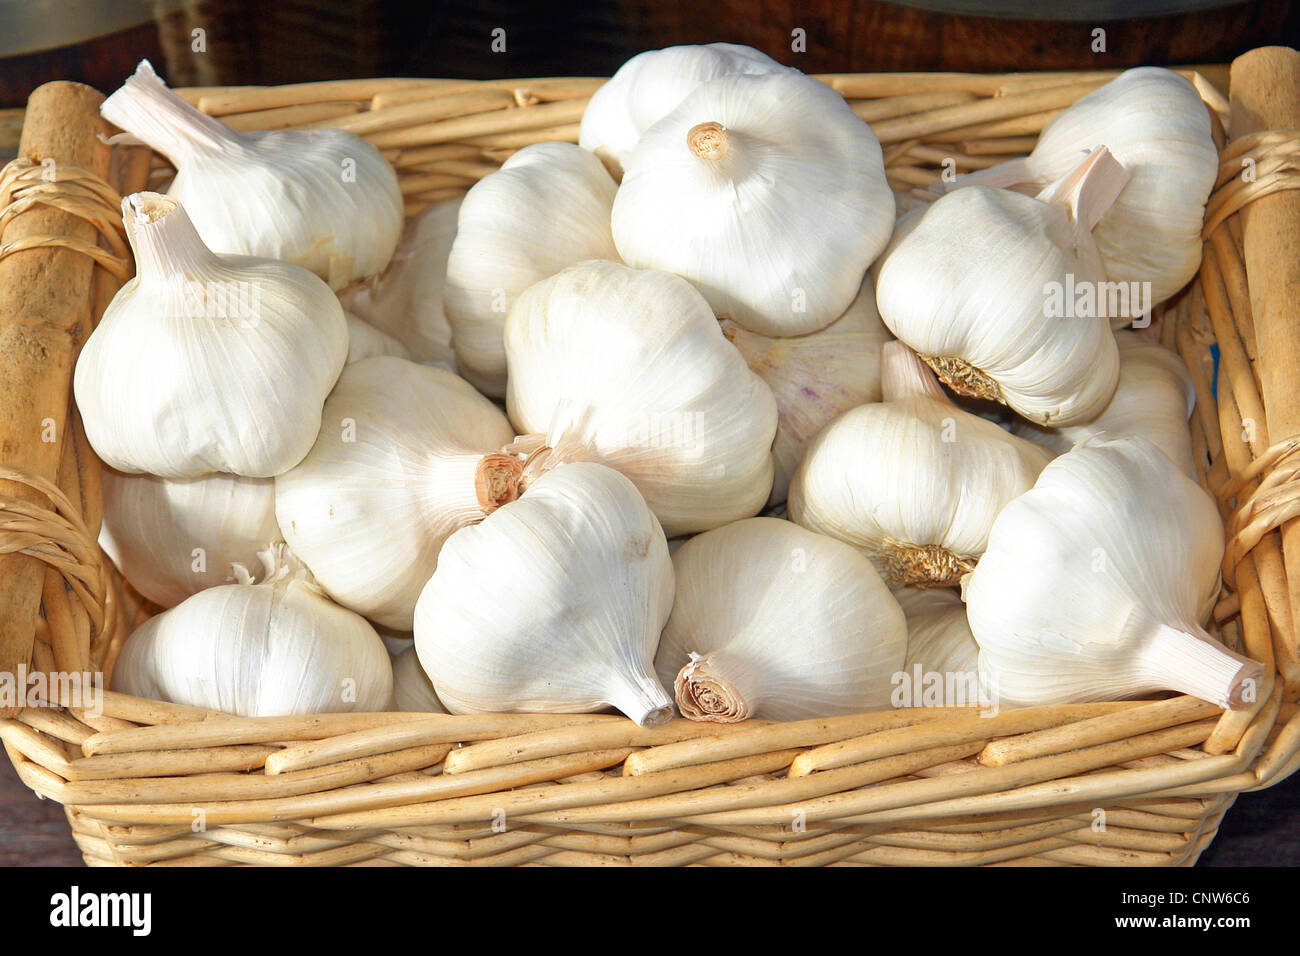 wild leek, elephant garlic (Allium ampeloprasum), Garlic bulbs - Stock Image